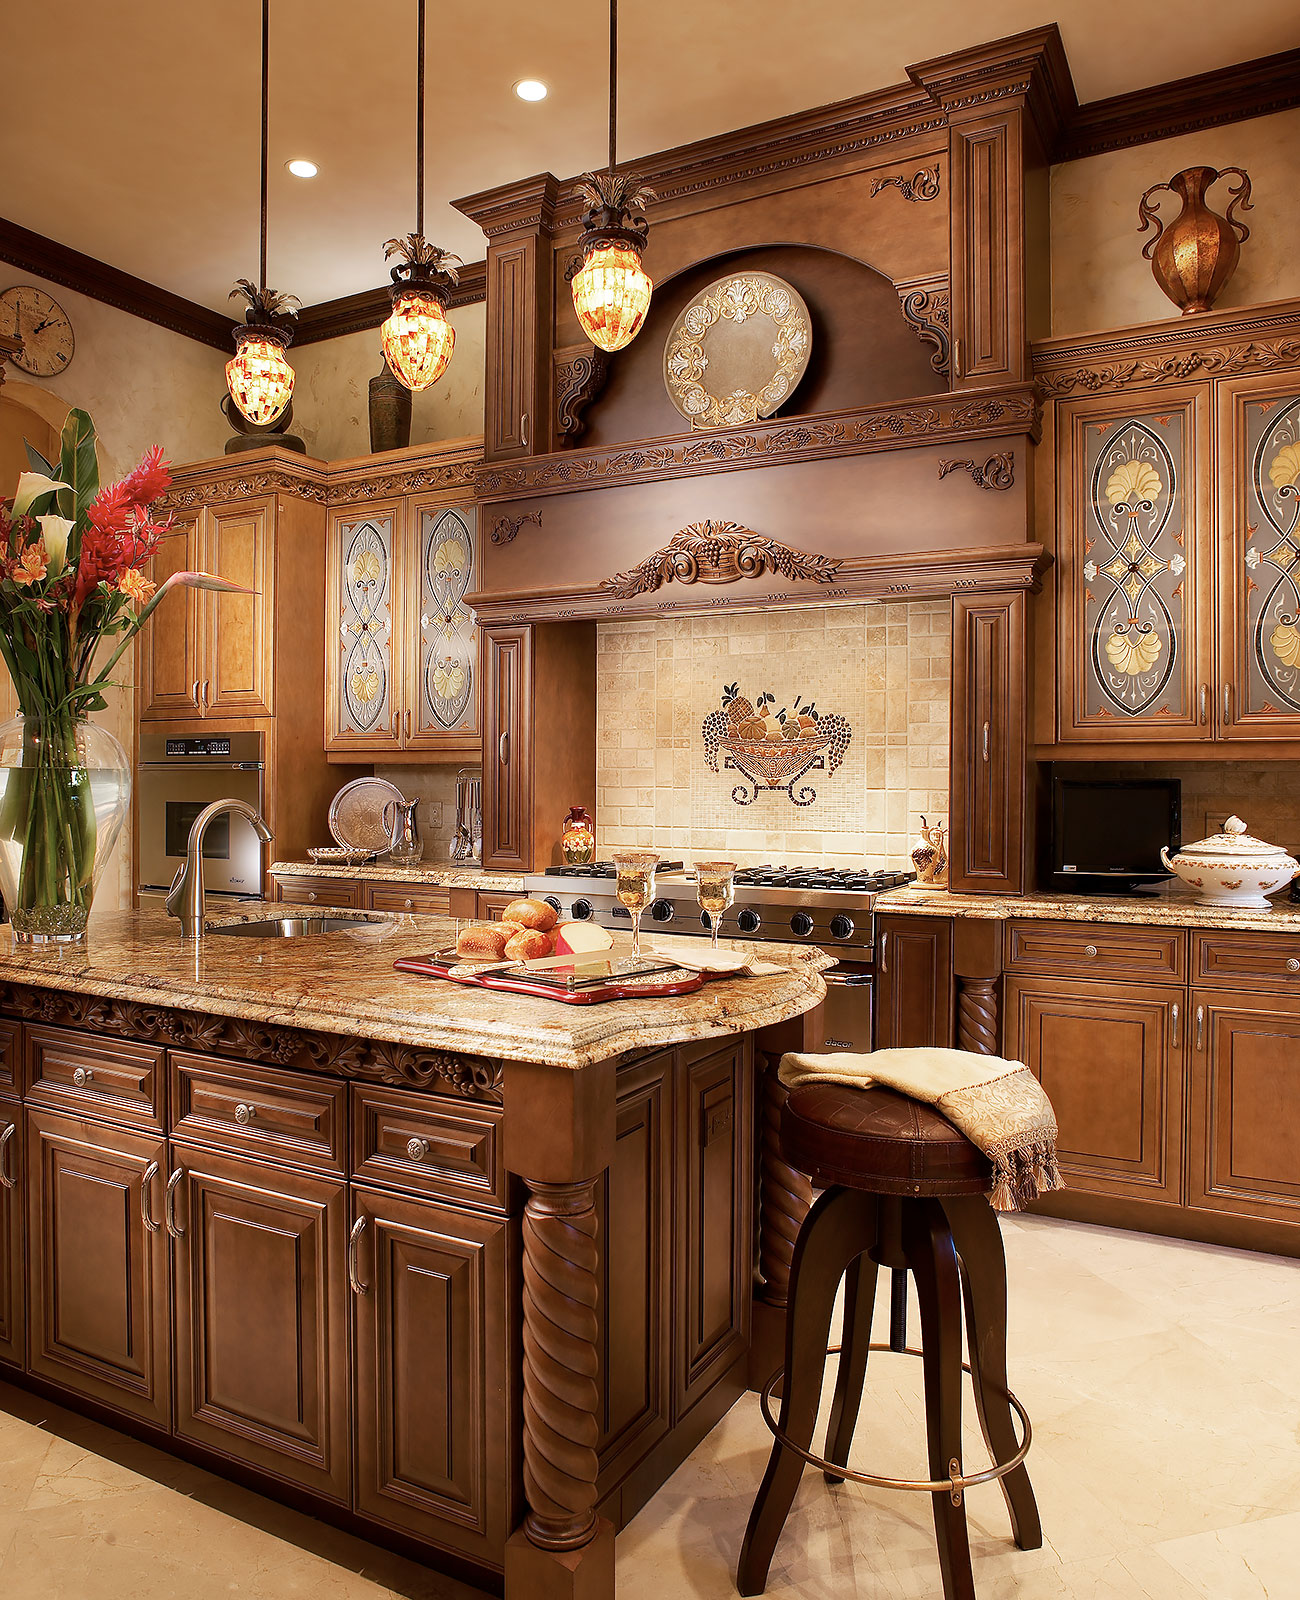 Luxury-Real-Estate-Photography-Kitchen-3